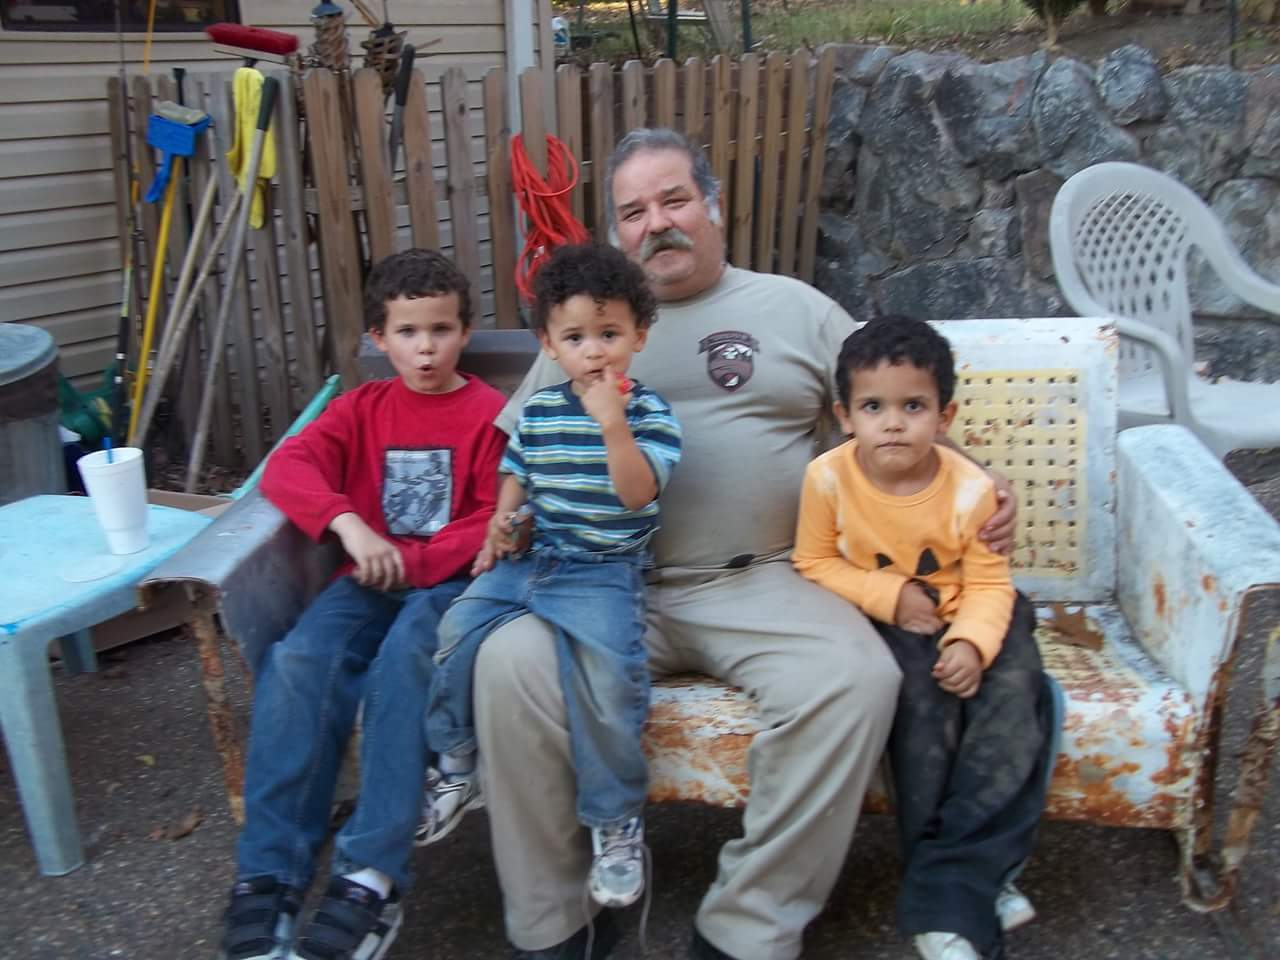 Jose & his grandsons